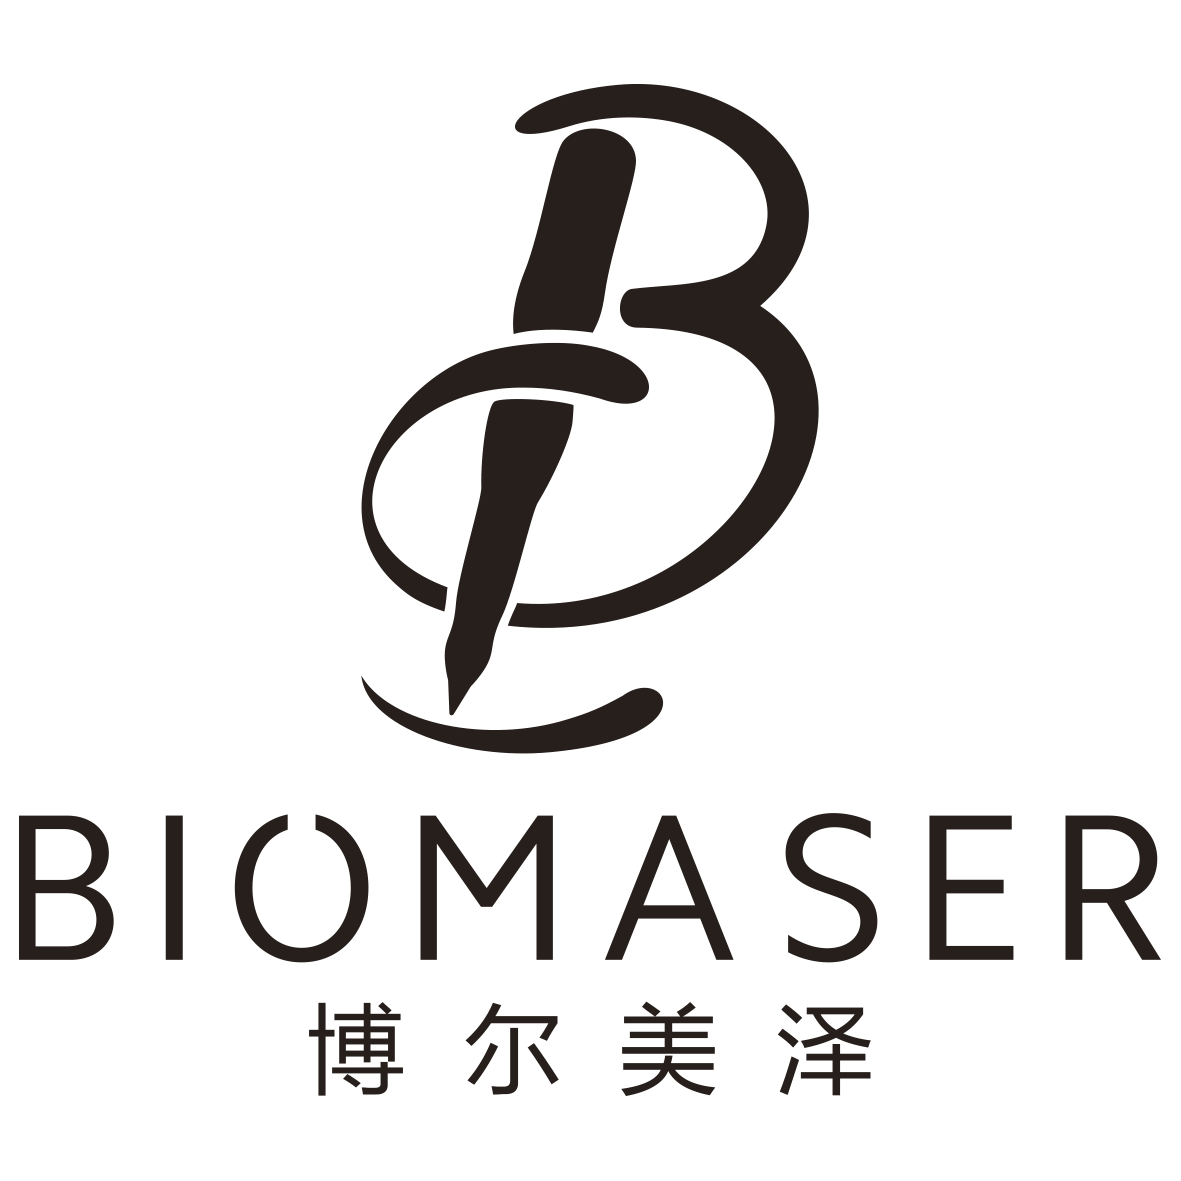 Biomaser Offical Store